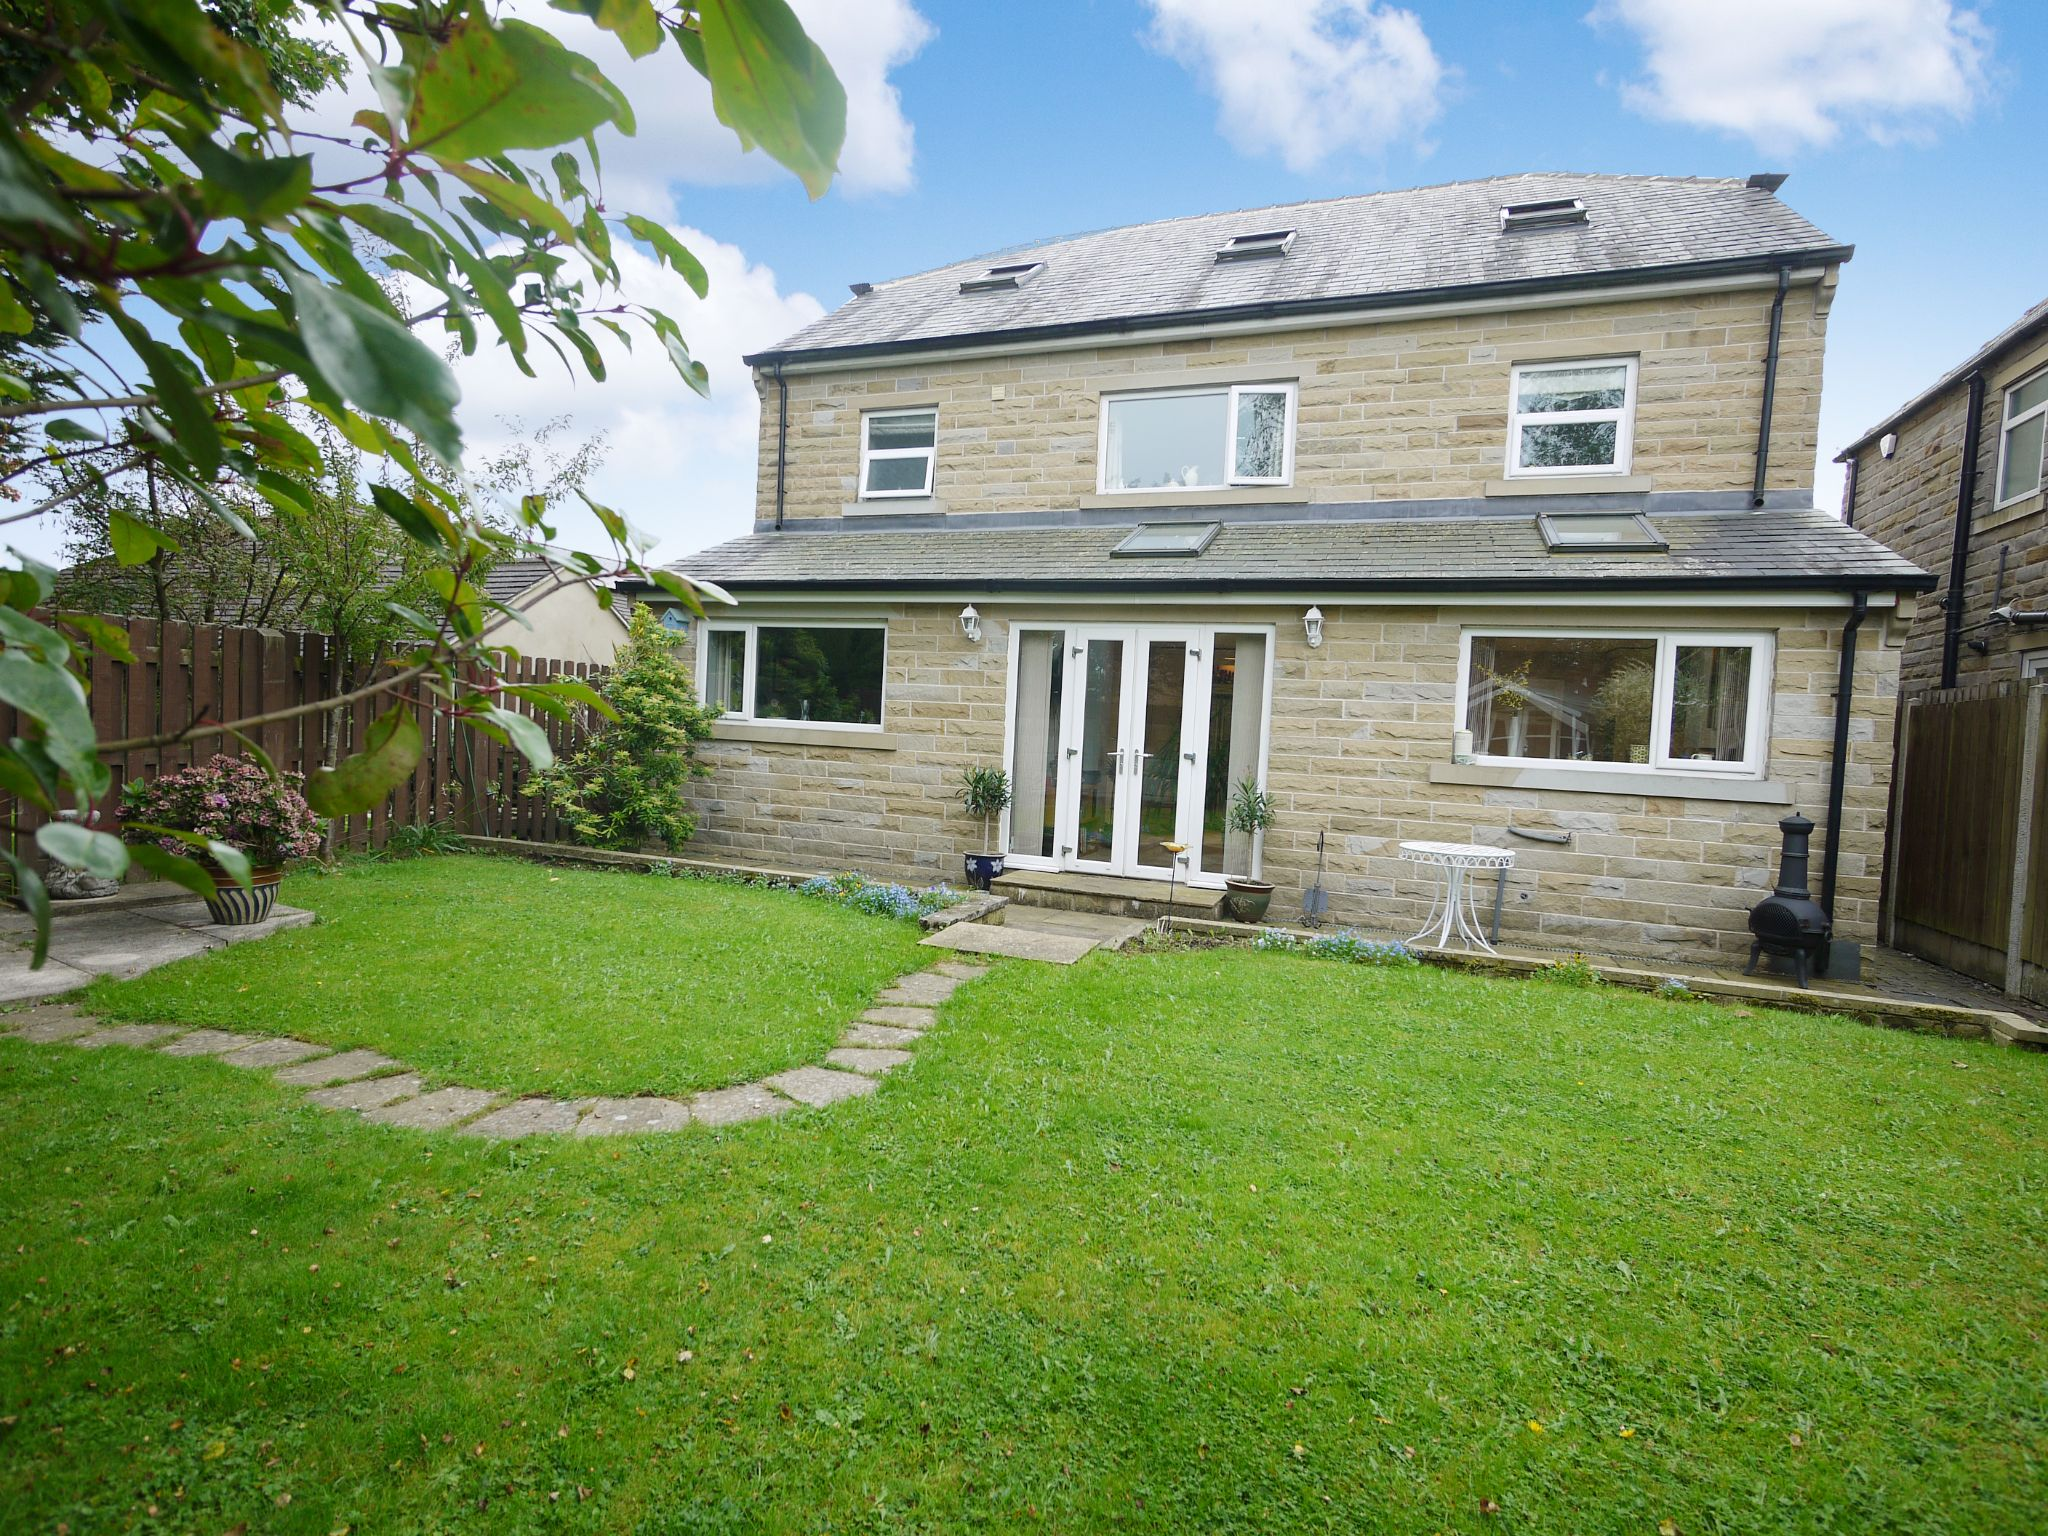 6 bedroom detached house SSTC in Halifax - rear.